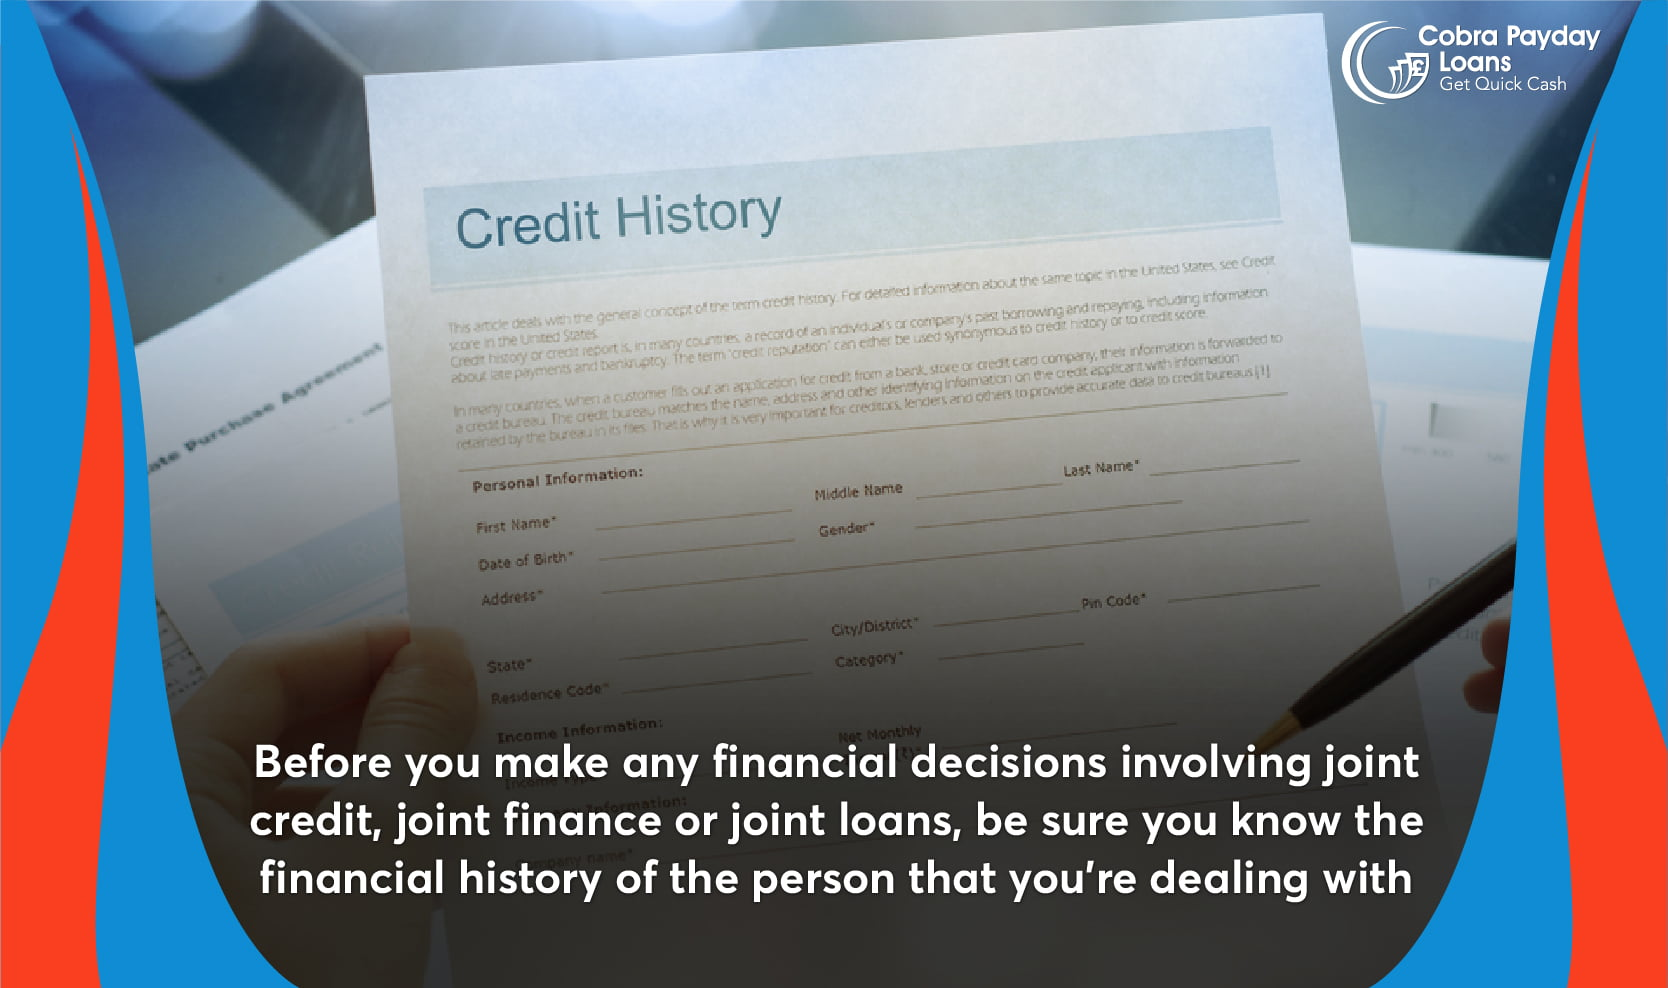 Before you make any financial decisions involving joint credit, joint finance or joint loans, be sure you know the financial history of the person that you're dealing with